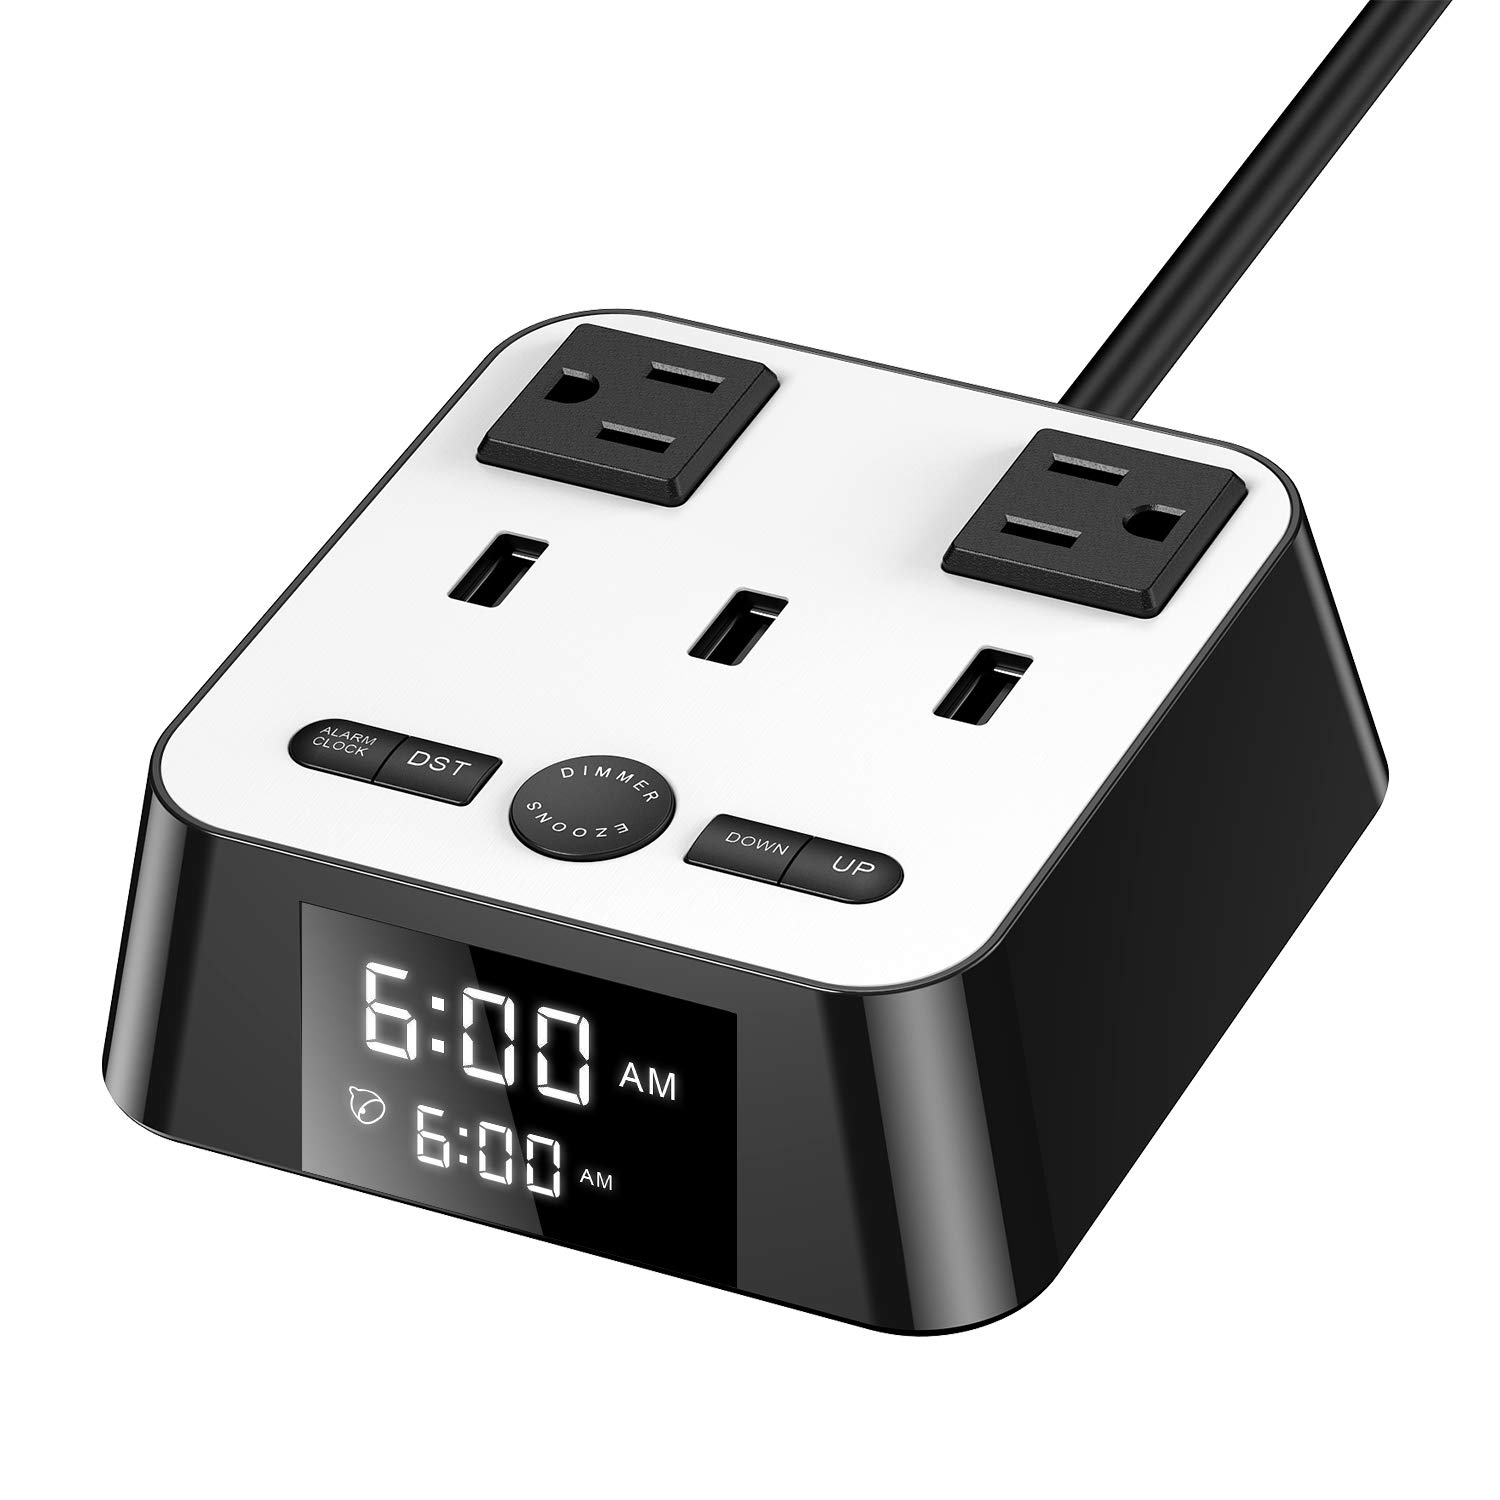 Yostyle Alarm Clock Charger w/3 USB Ports & 2 AC Outlets, 6ft Power Cord Charging Station Power Strip for Hotel Home Office,UL Tested (4 Dimmer Brightness,Snooze,ON/Off Switch,DST Time,Battery Backup)